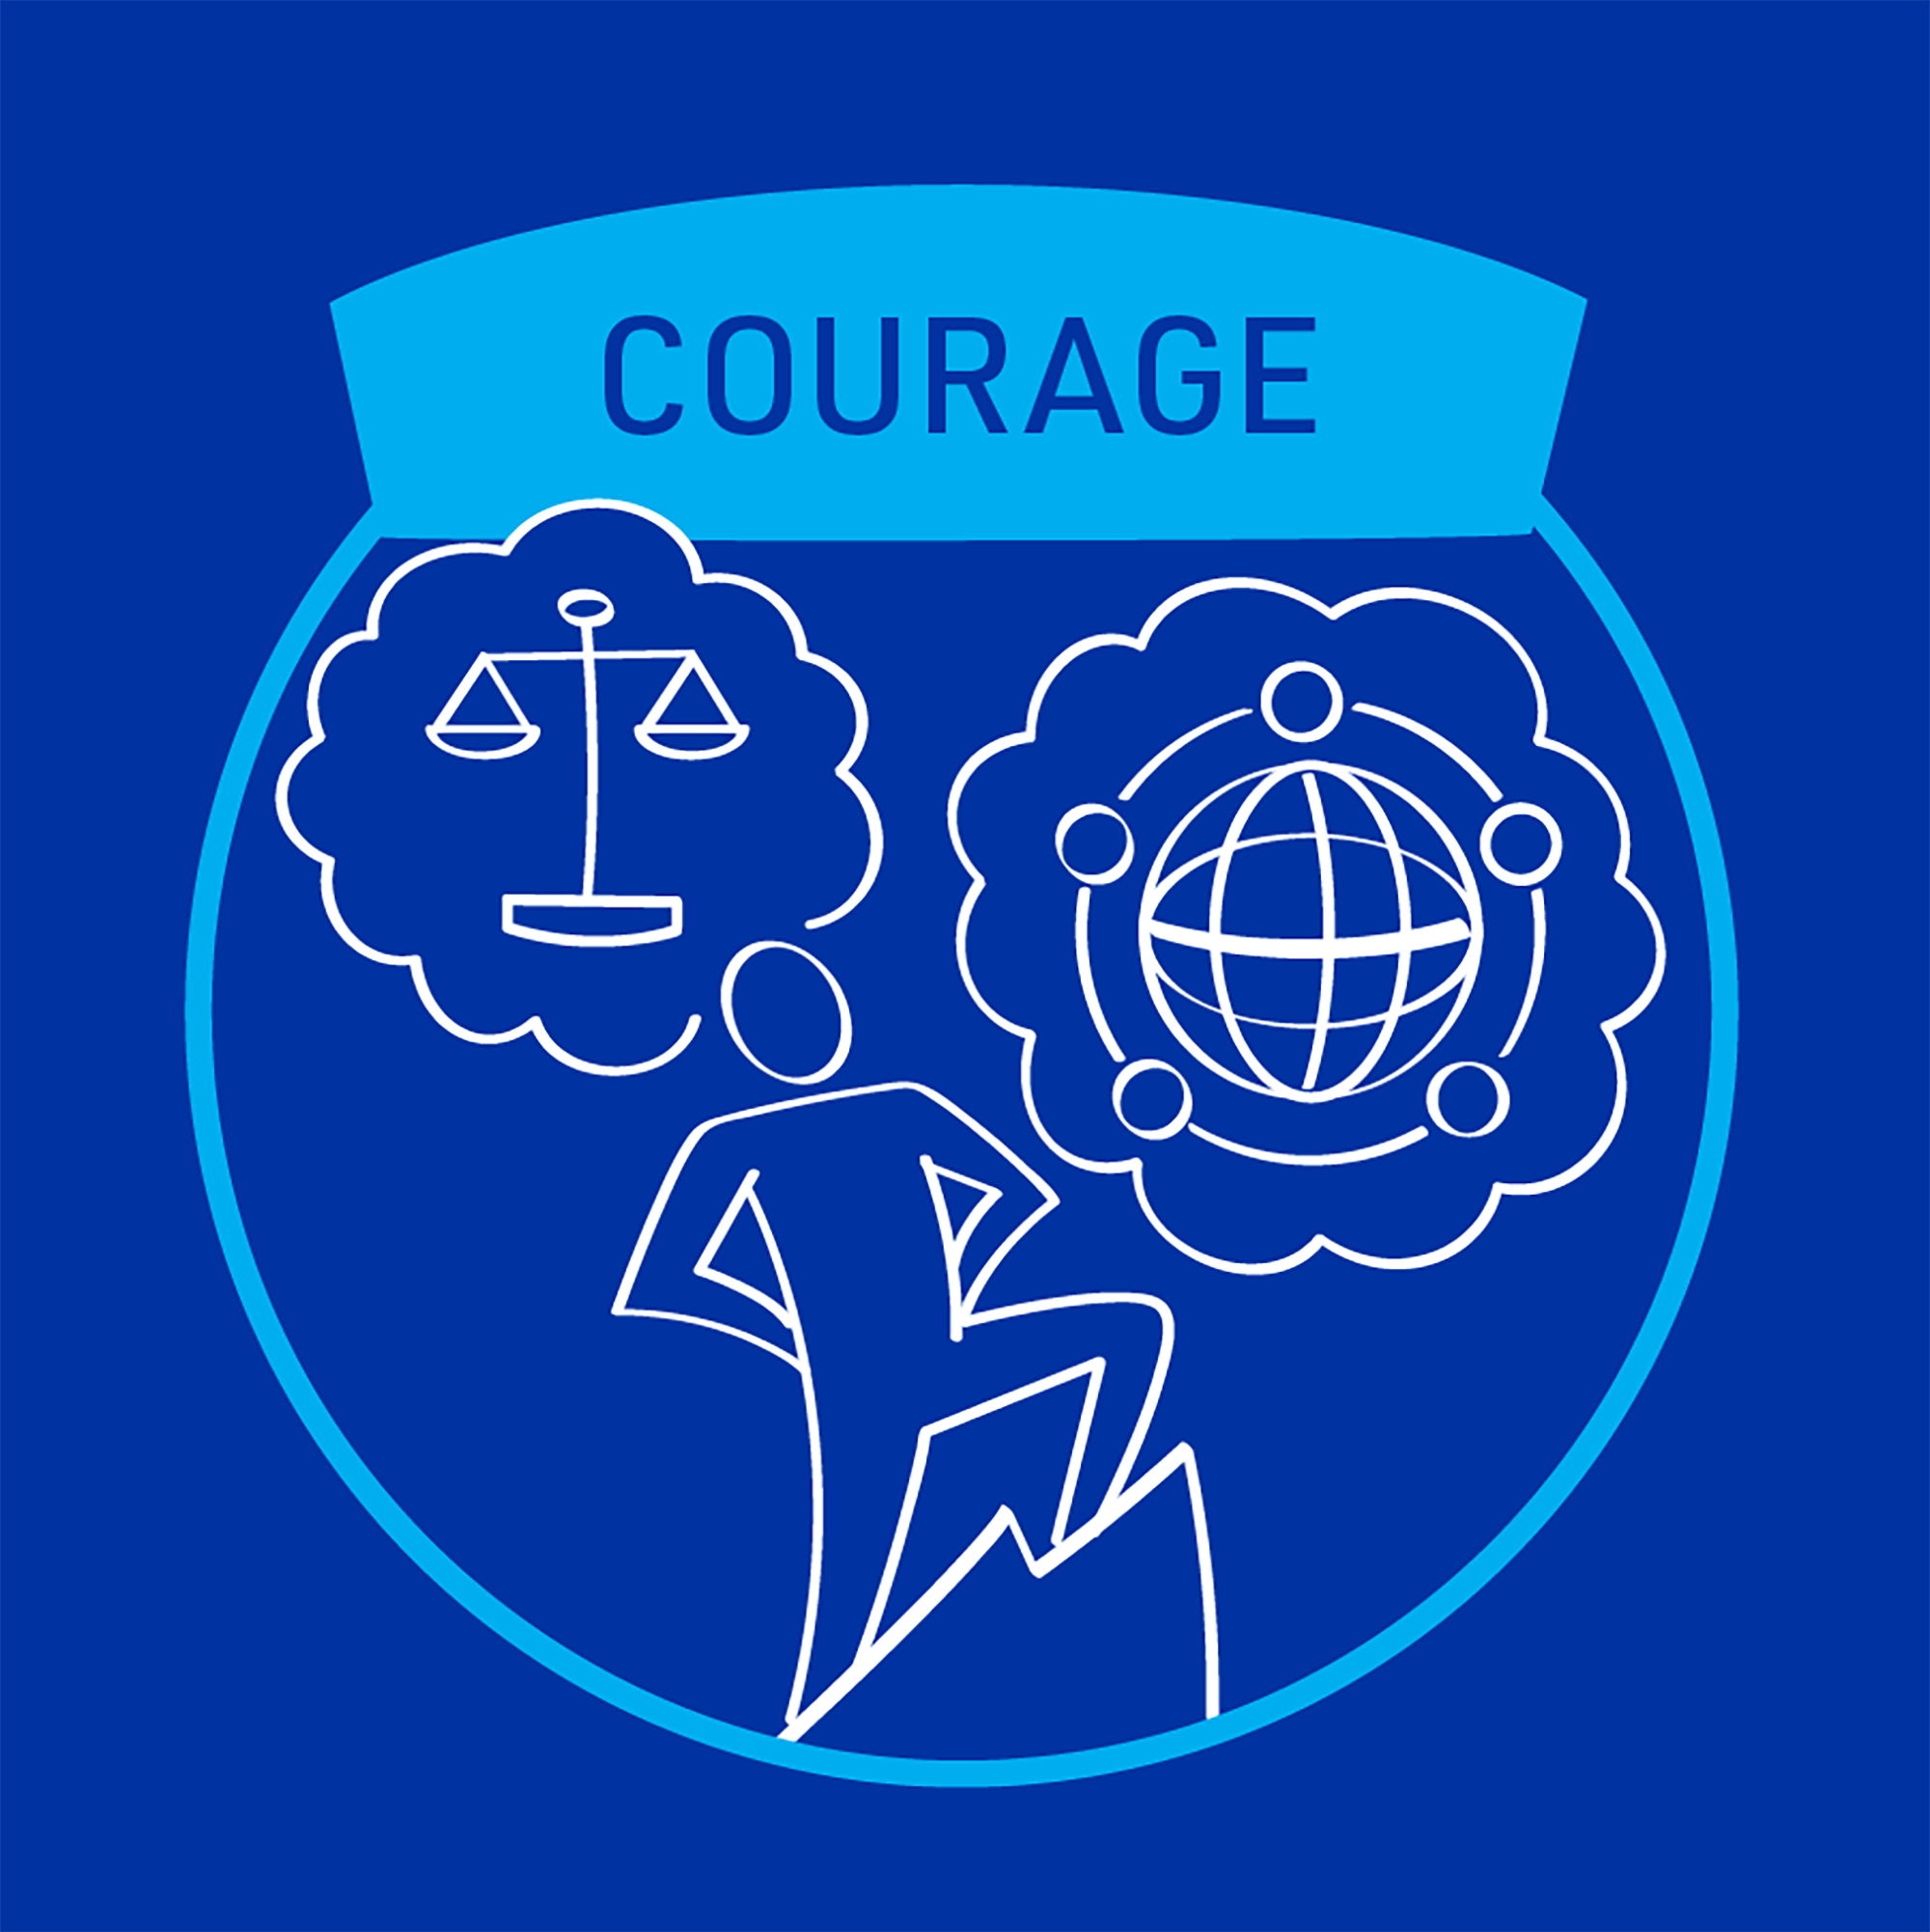 MiTek's guiding principle of courage - A square graphic of a person summiting a mountain